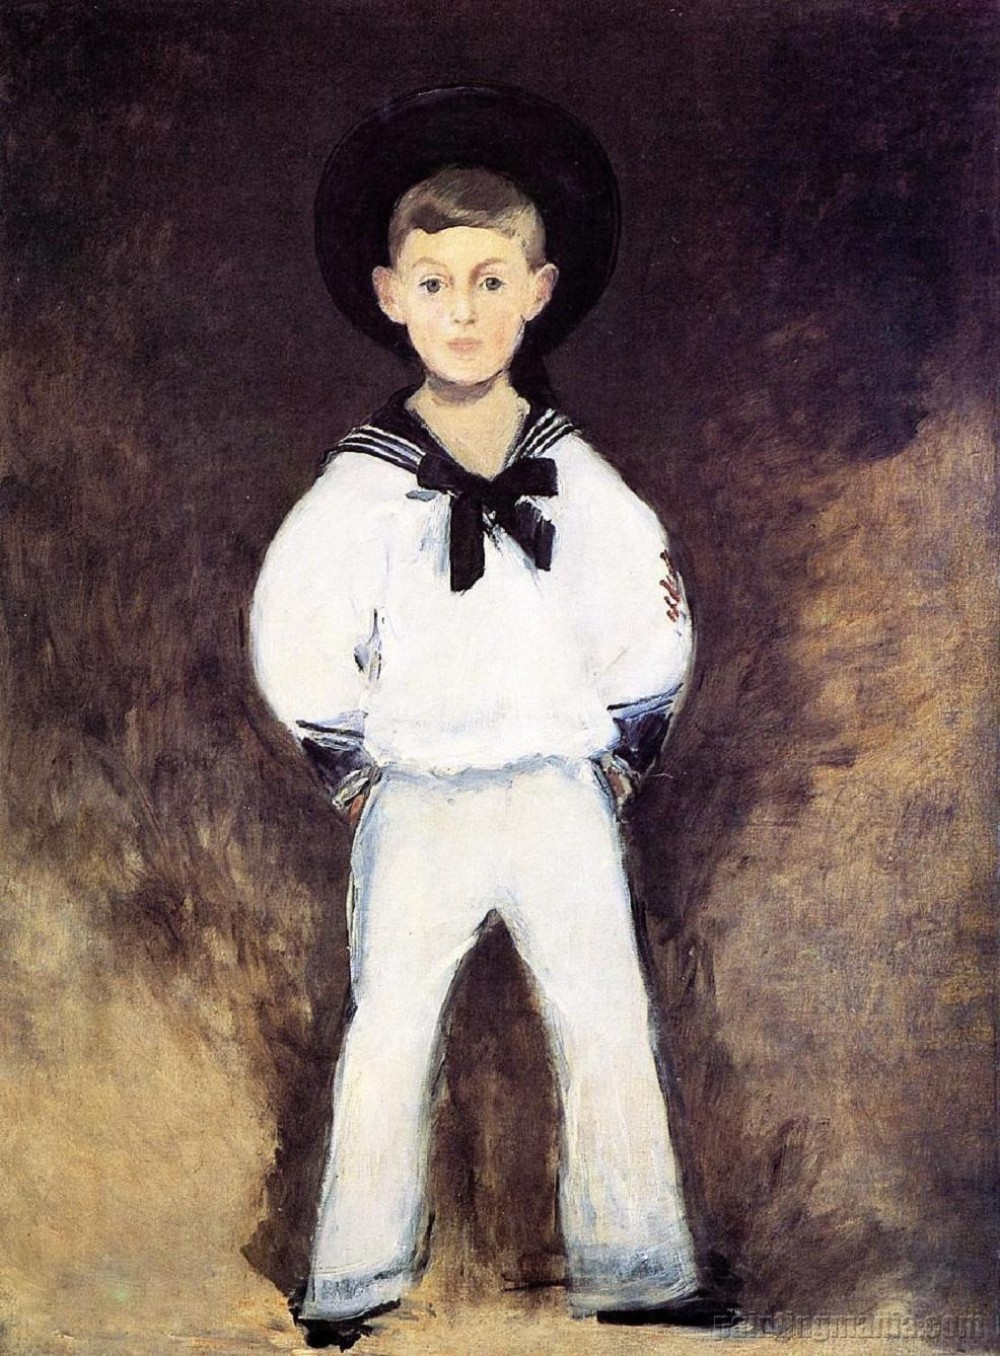 Édouard Manet. A Portrait of Henry Bernstein as a Child. 1881